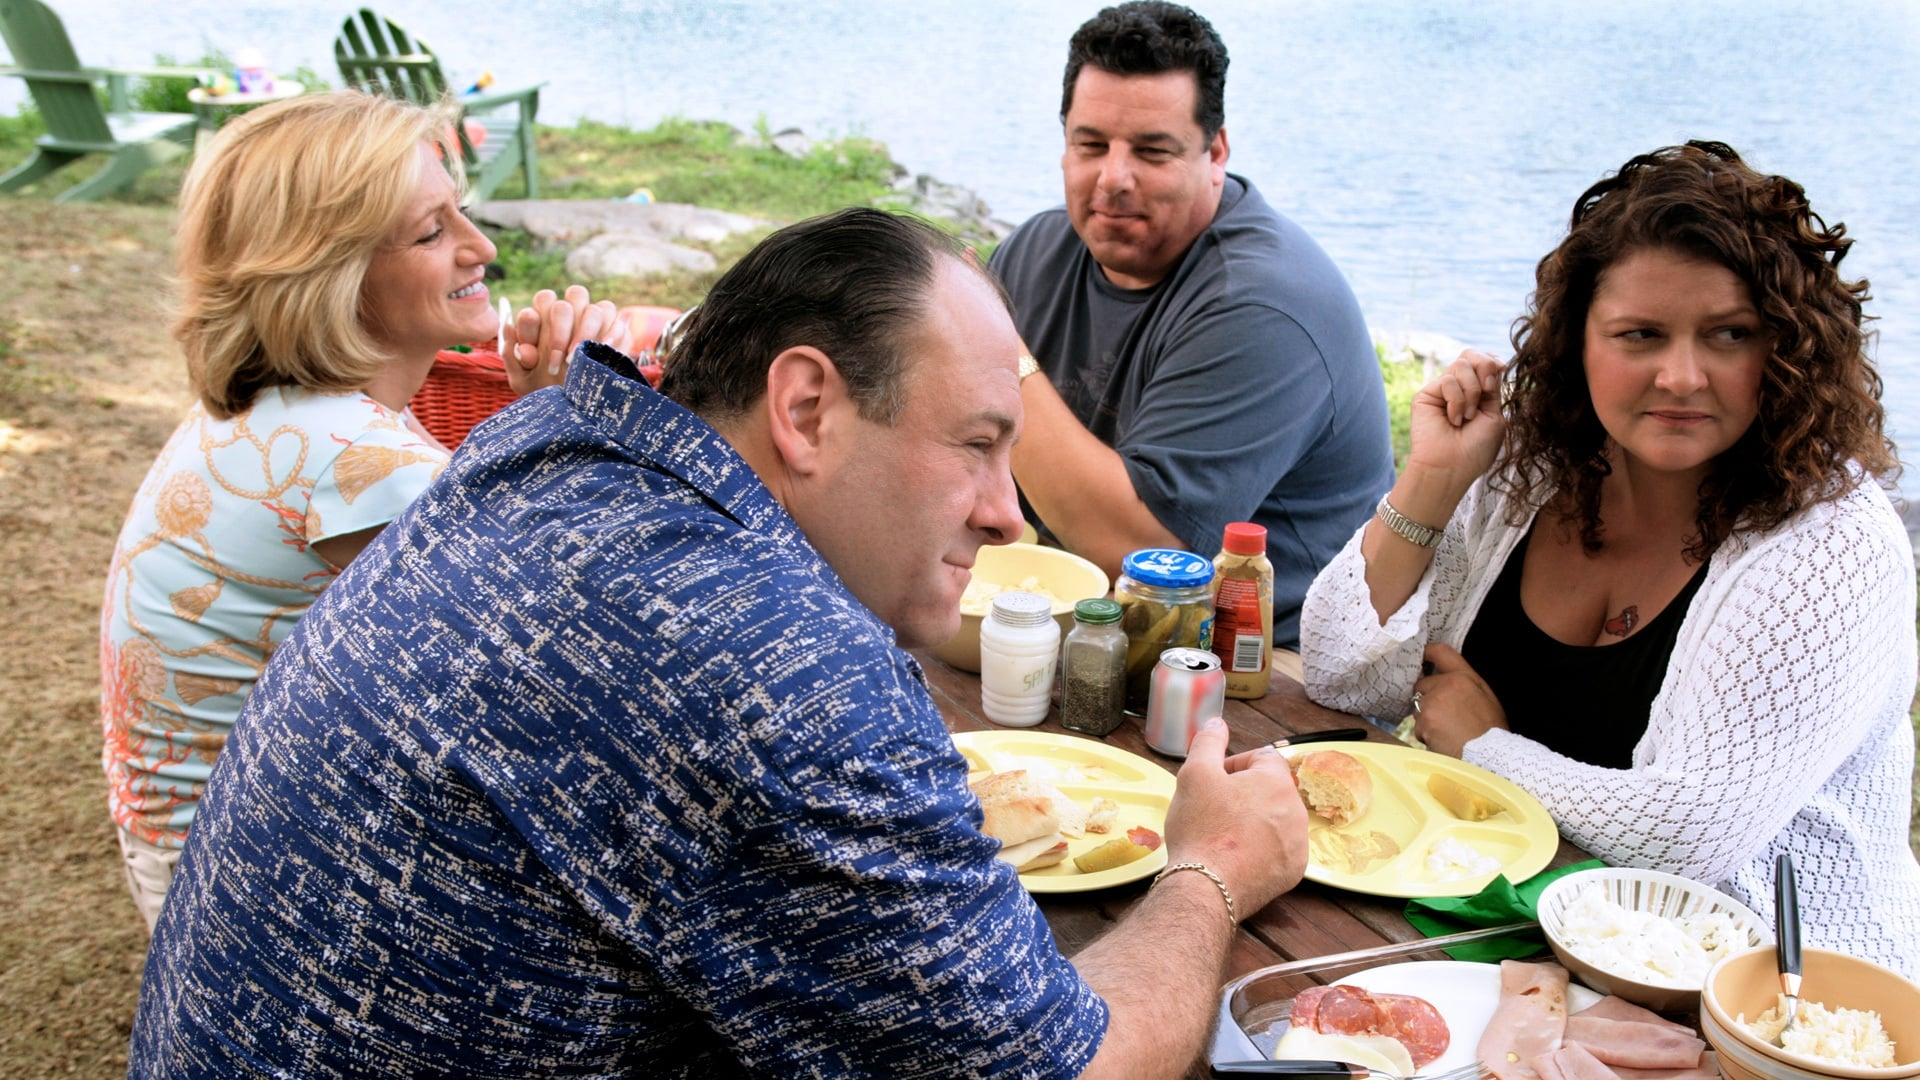 where can i watch the Sopranos Online? | Yahoo Answers